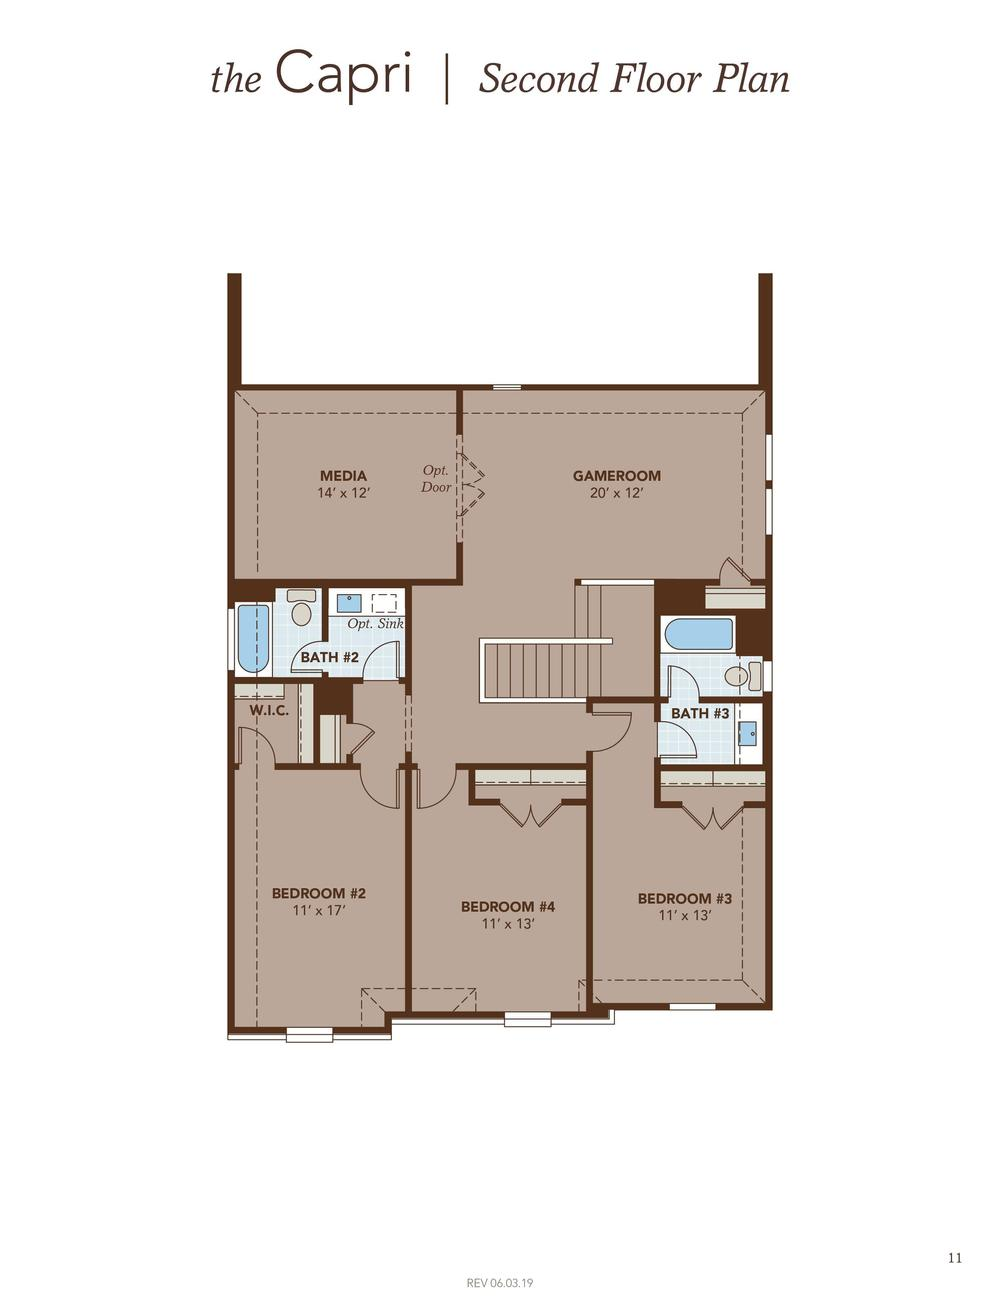 Capri Second Floor Plan